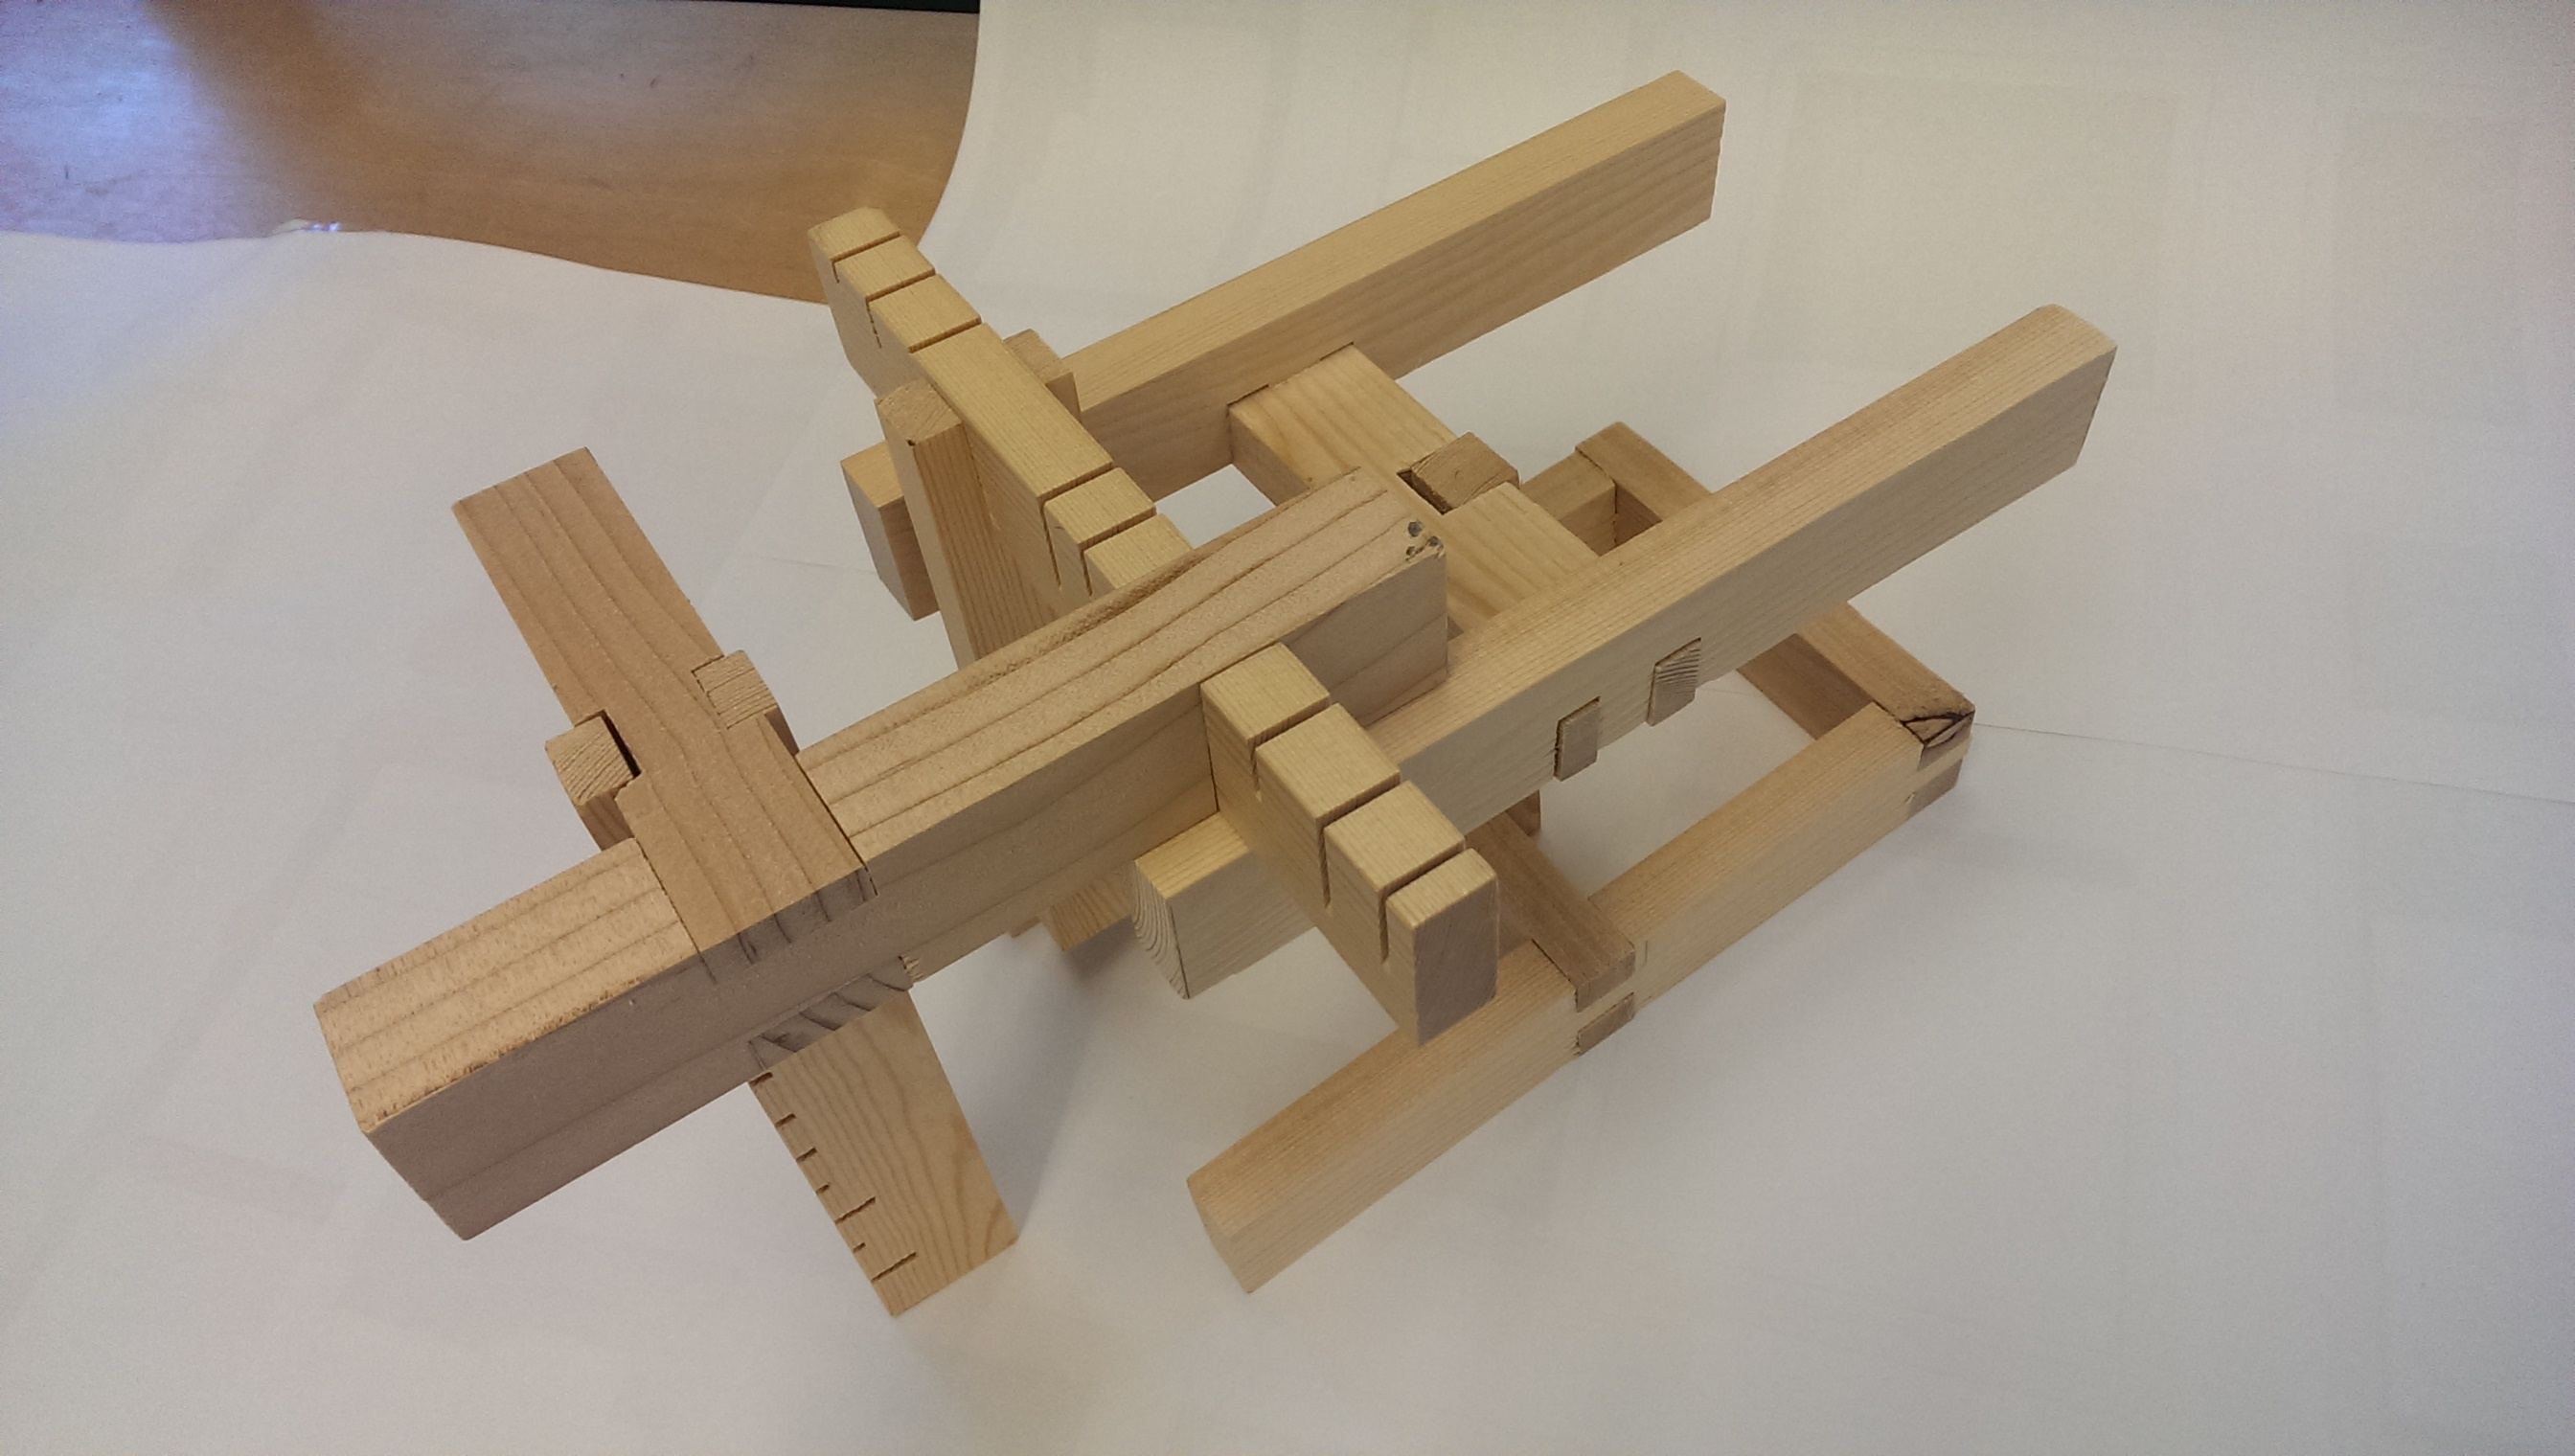 Wood Joinery Thriving Through Making